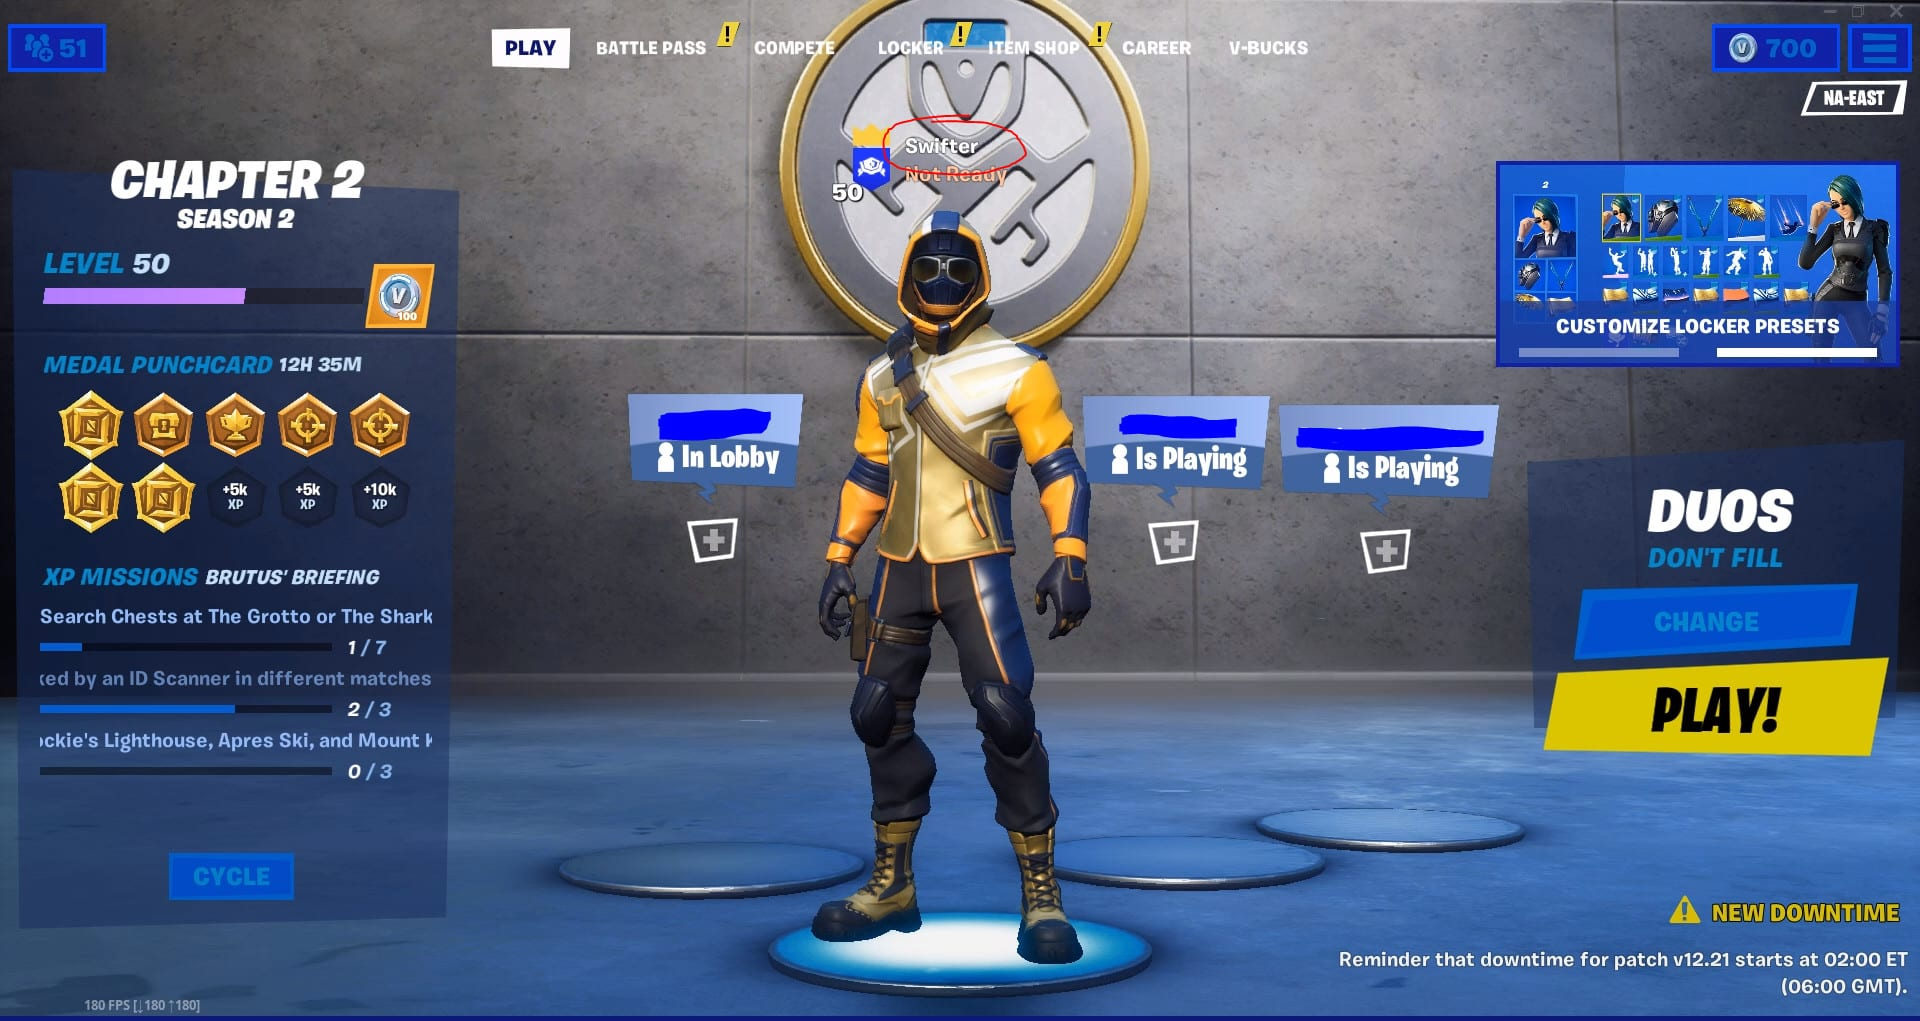 Get You Any Fortnite Username By Gameswifter Many users of fortnite will use username fonts sites to generate a fancy looking username for their character. get you any fortnite username